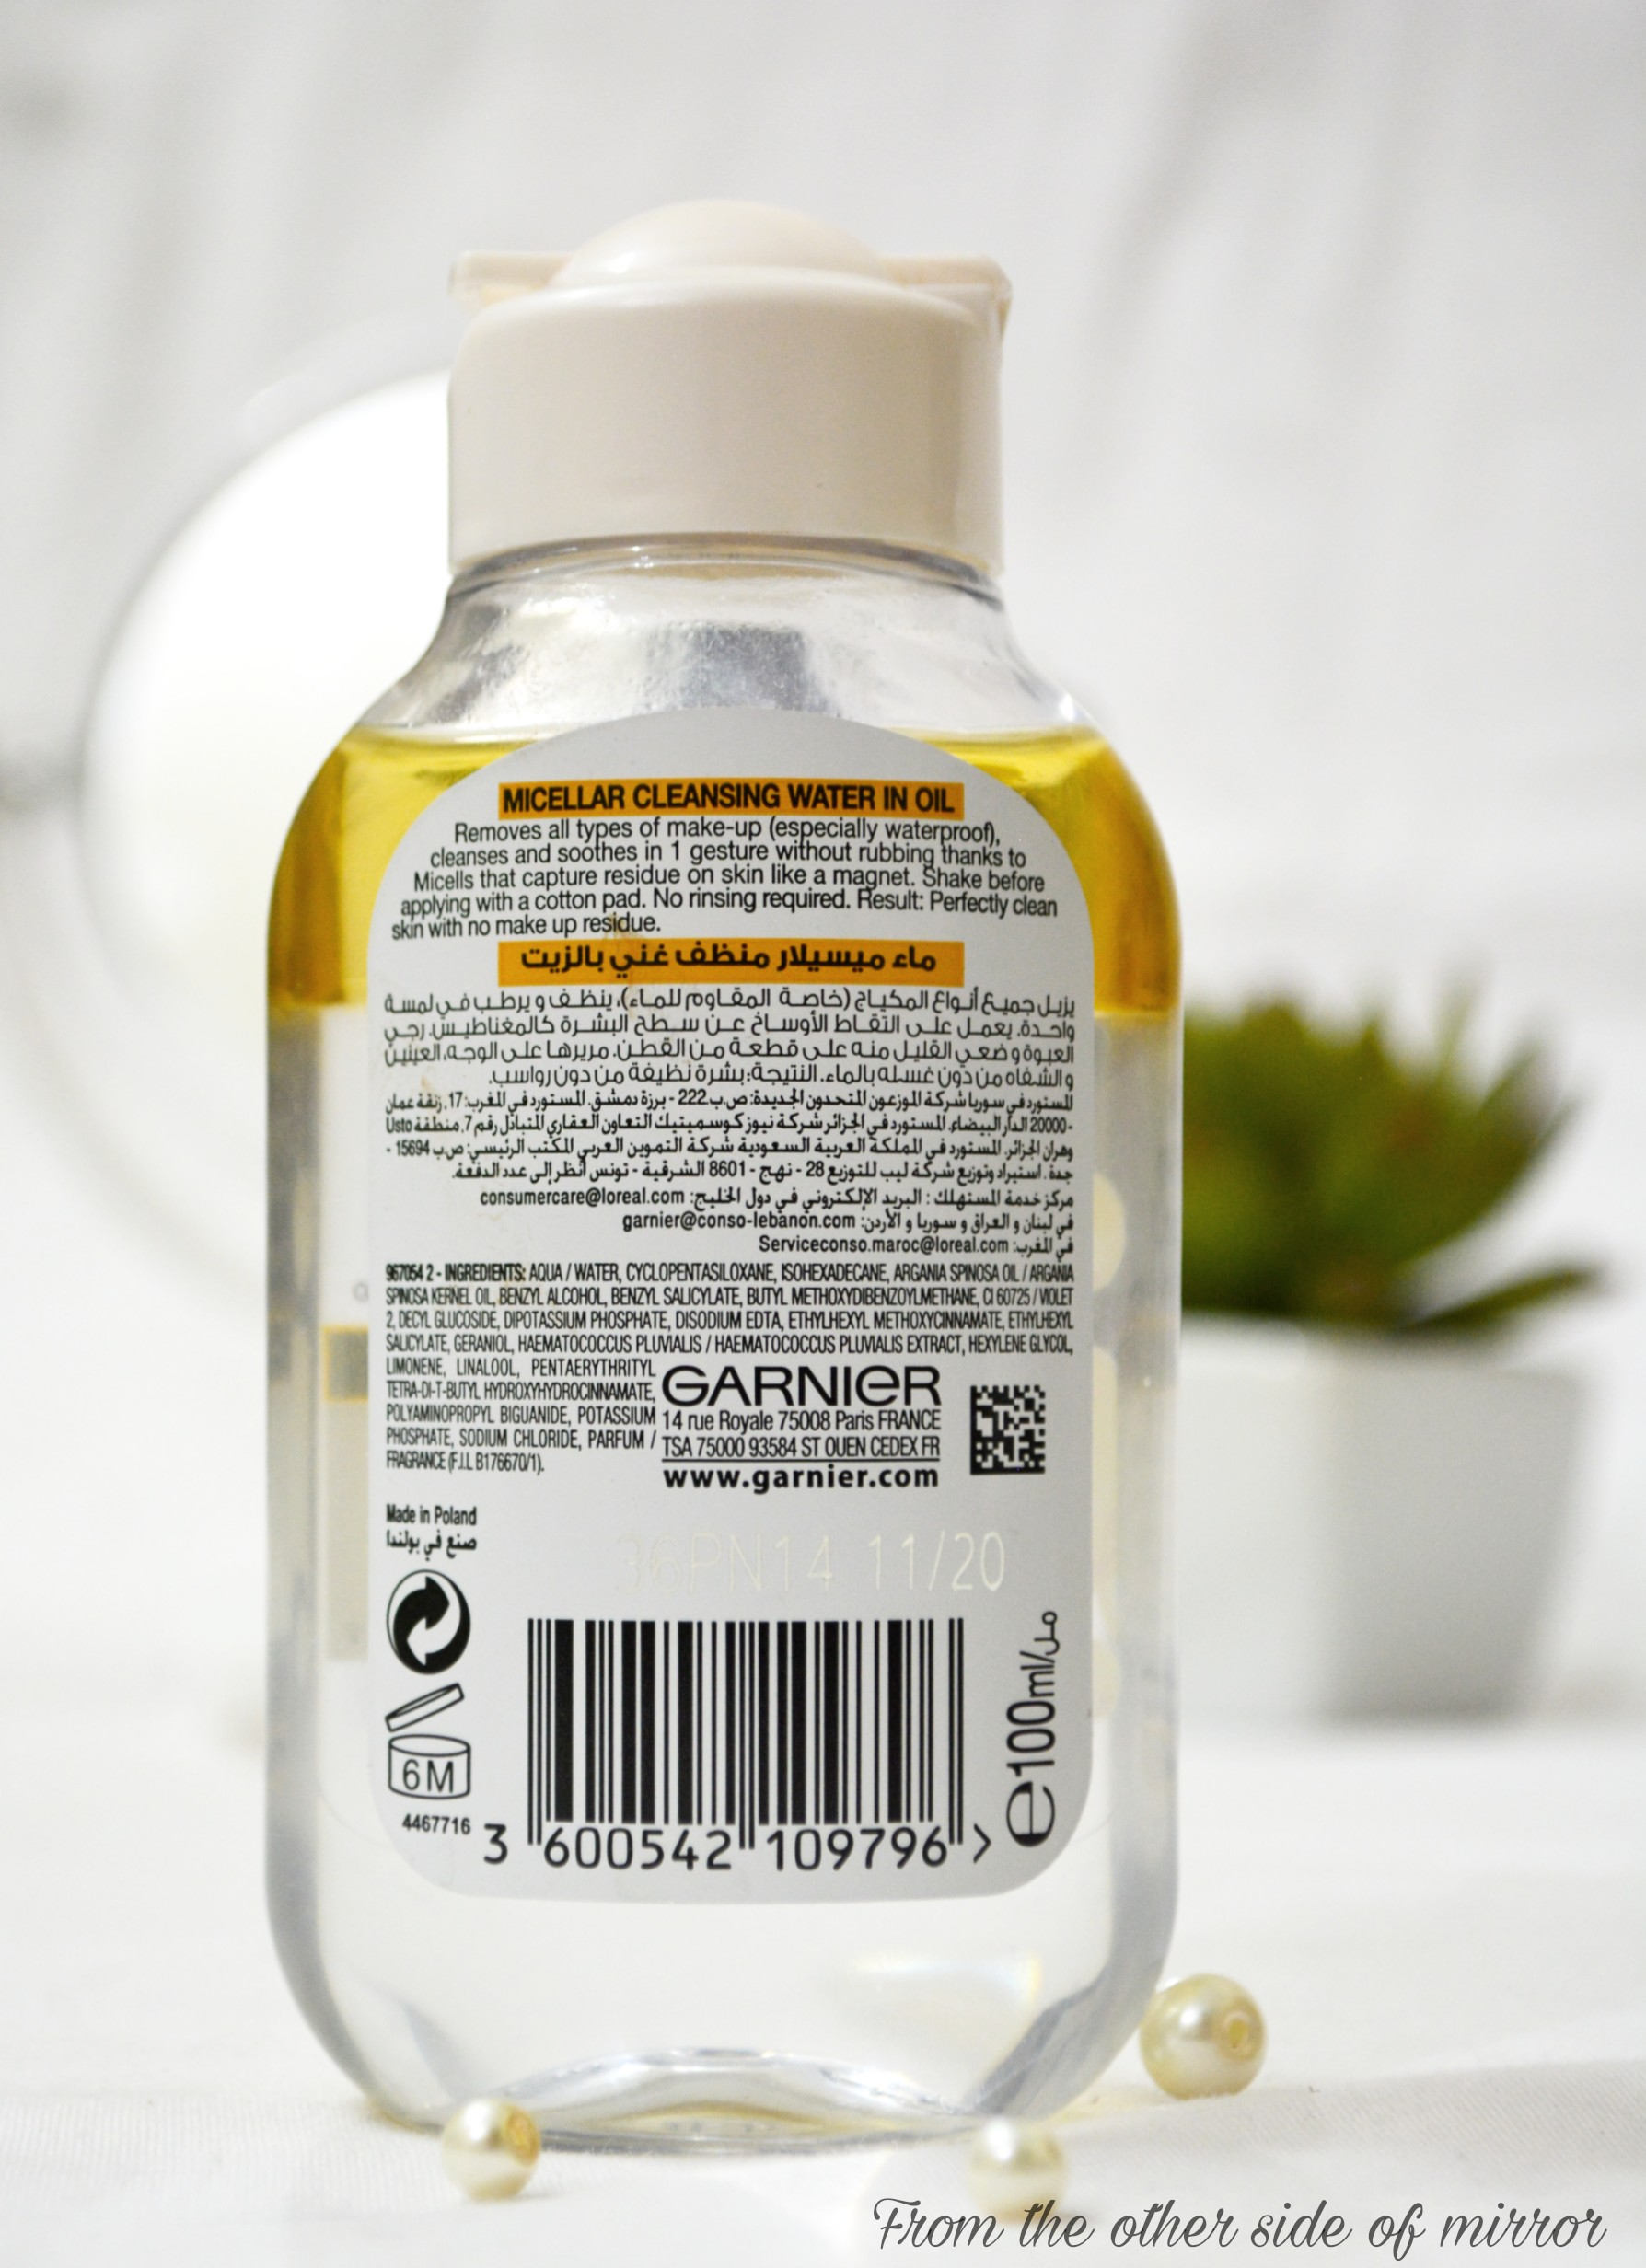 The Garnier Micellar Oil Infused Cleansing Water